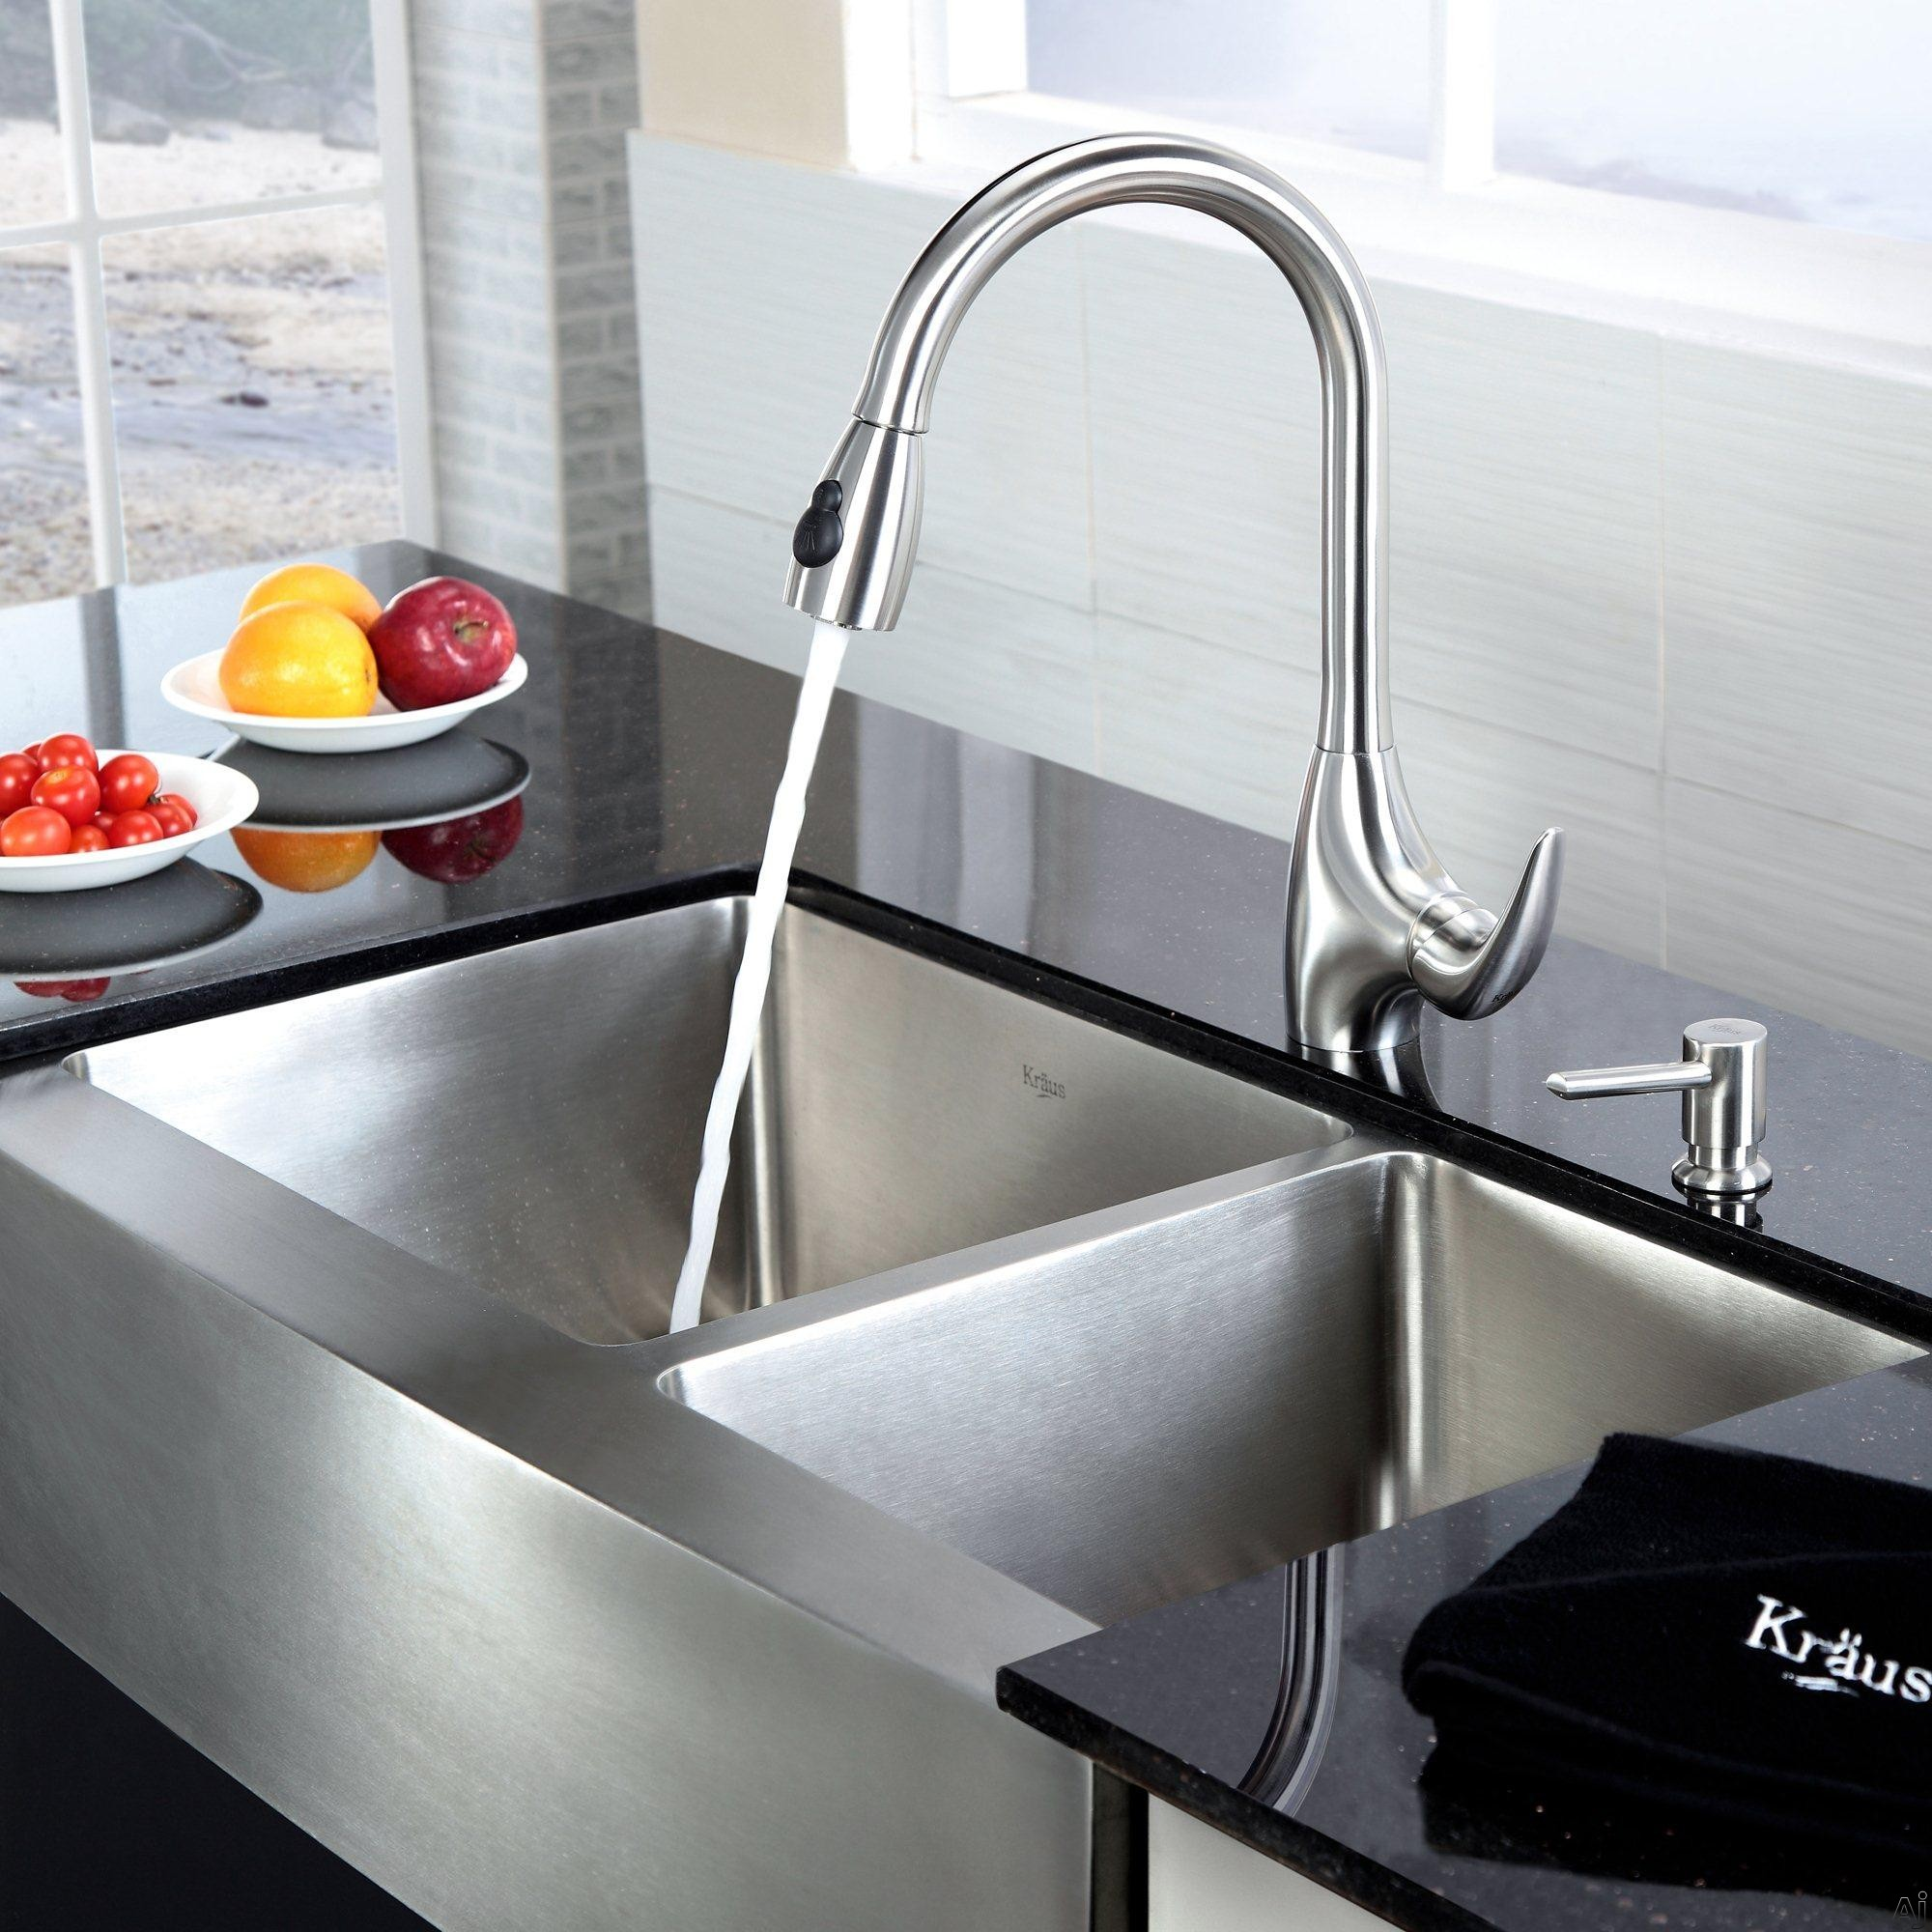 Kitchen Sink Double : KHF20336KPF2170SD20 36 Inch Farmhouse Double Bowl Stainless Steel Sink ...